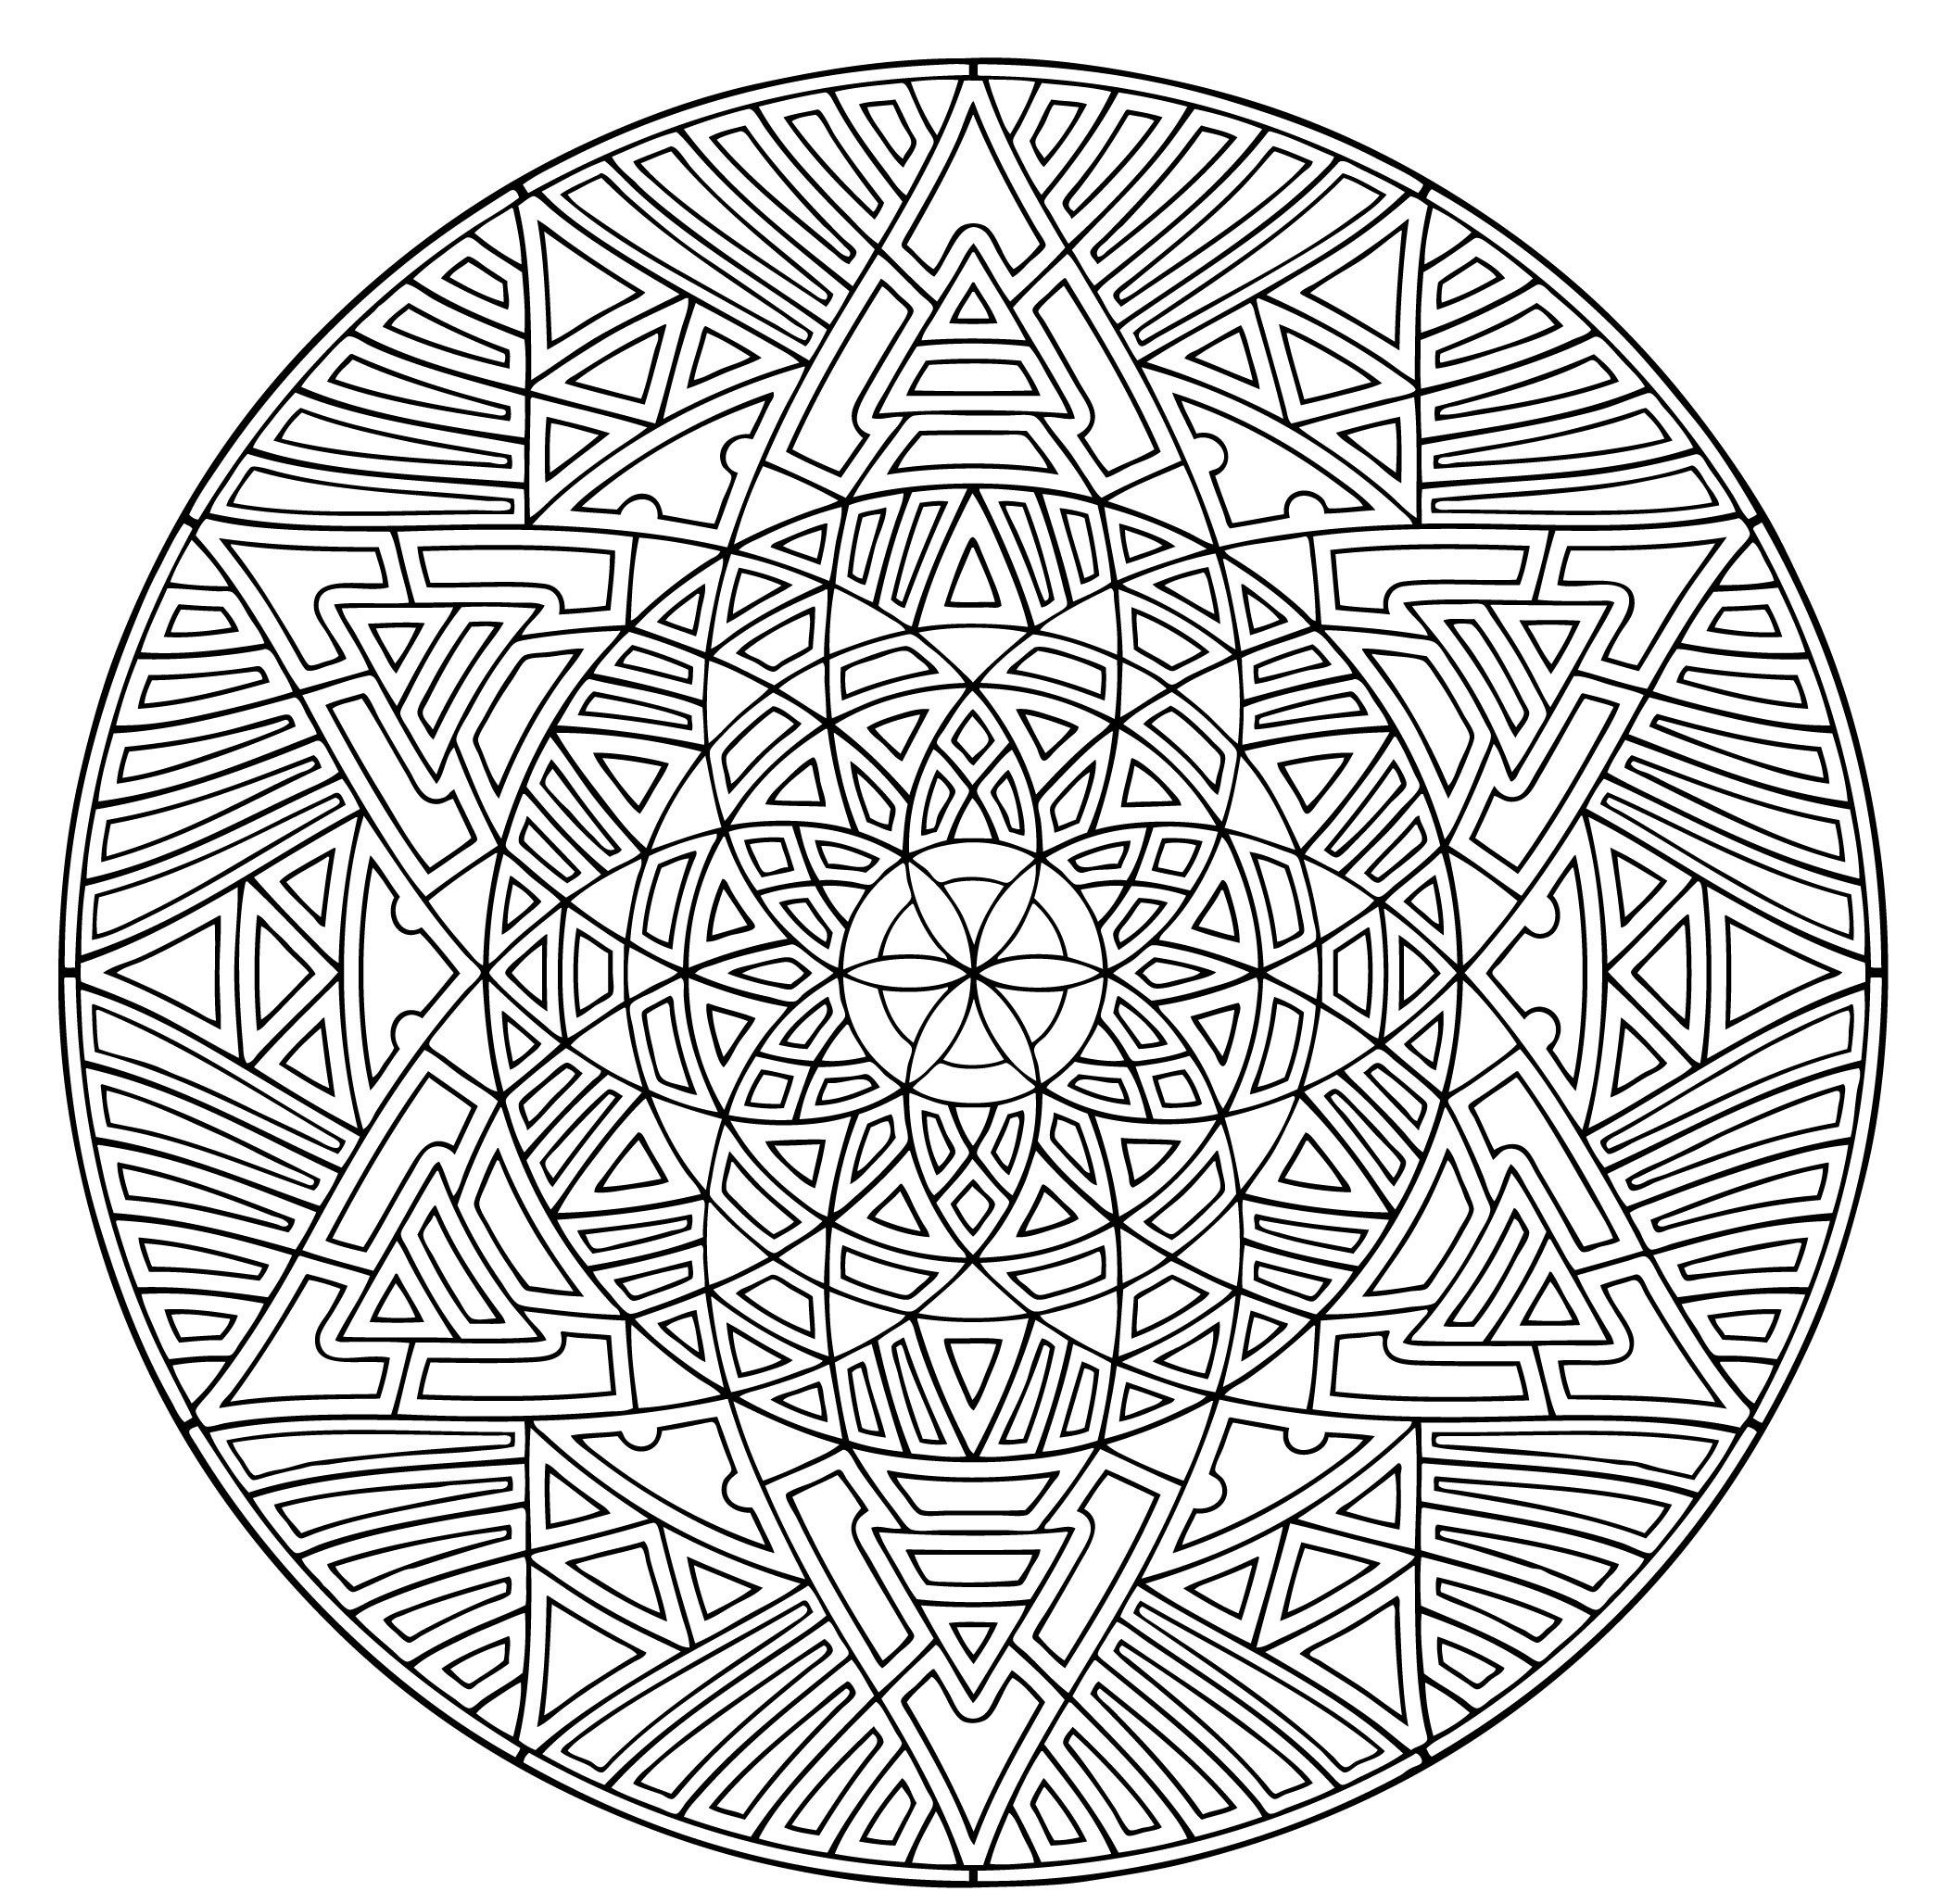 Simple Kaleidoscope Coloring Pages Kids Kaleidoscope Coloring Pages Simple Kaleido Geometric Coloring Pages Detailed Coloring Pages Abstract Coloring Pages